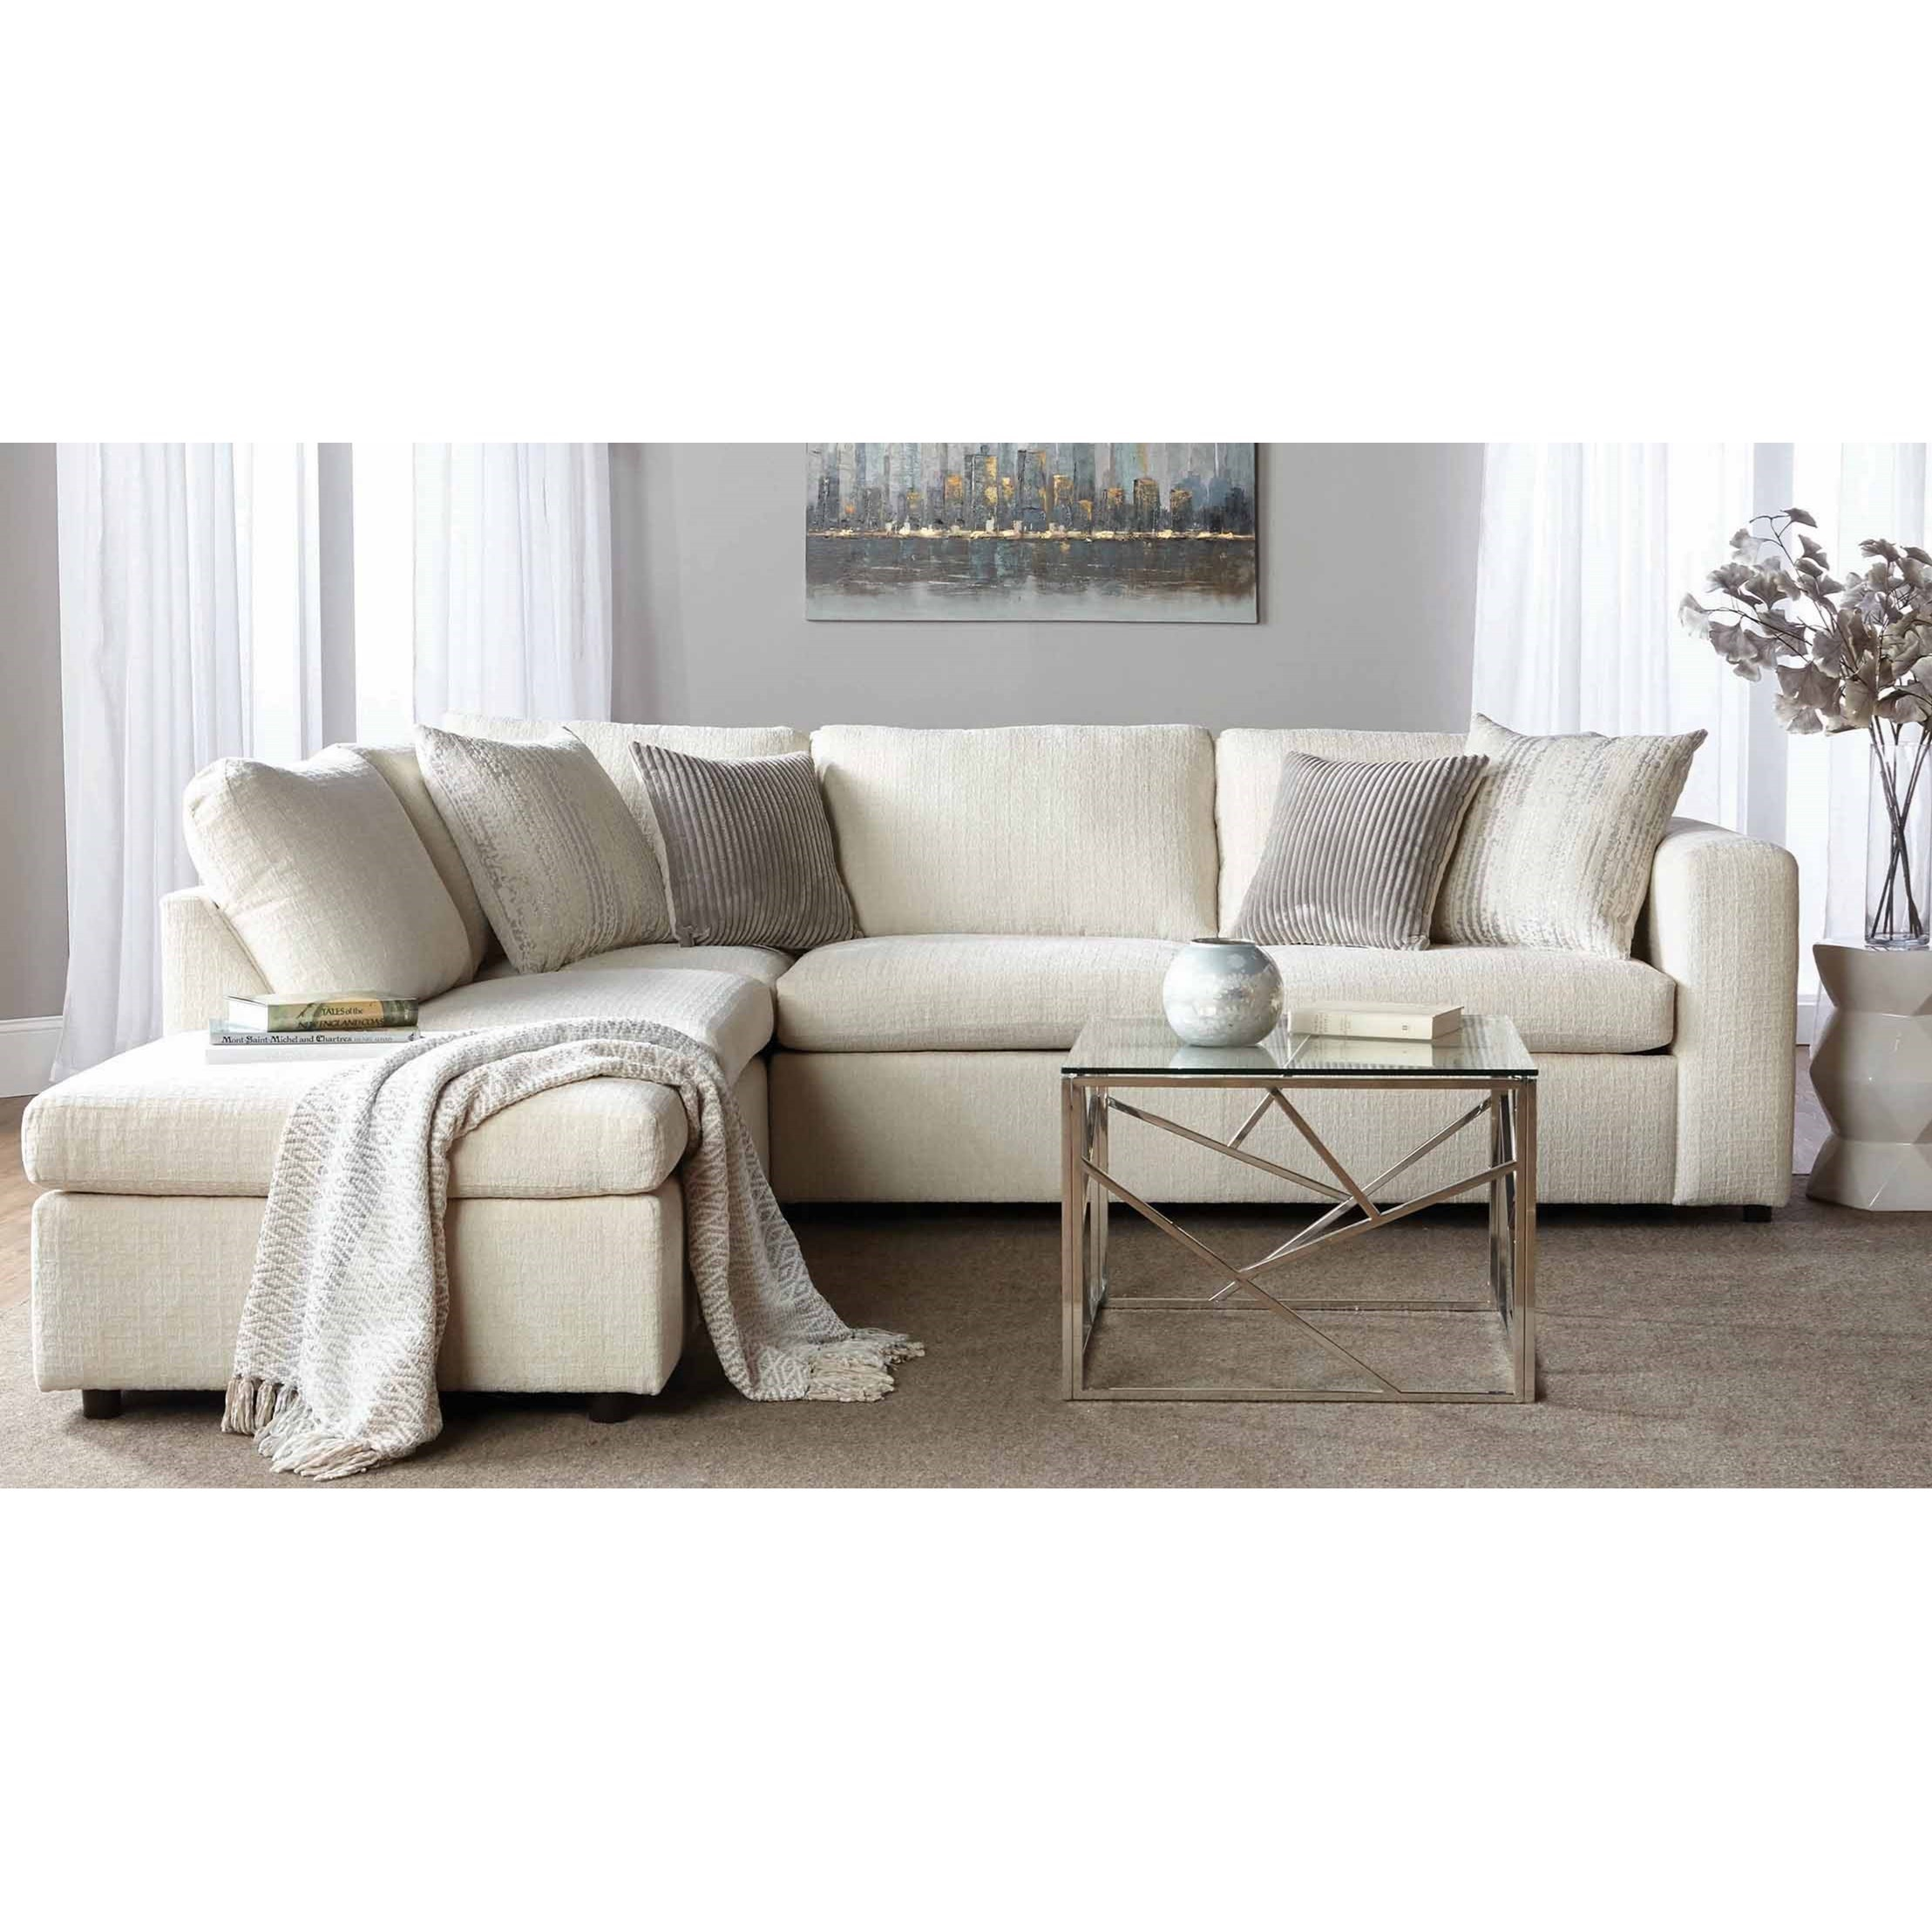 1100 Sectional Sofa with Chaise by Serta Upholstery by Hughes Furniture at Rooms for Less